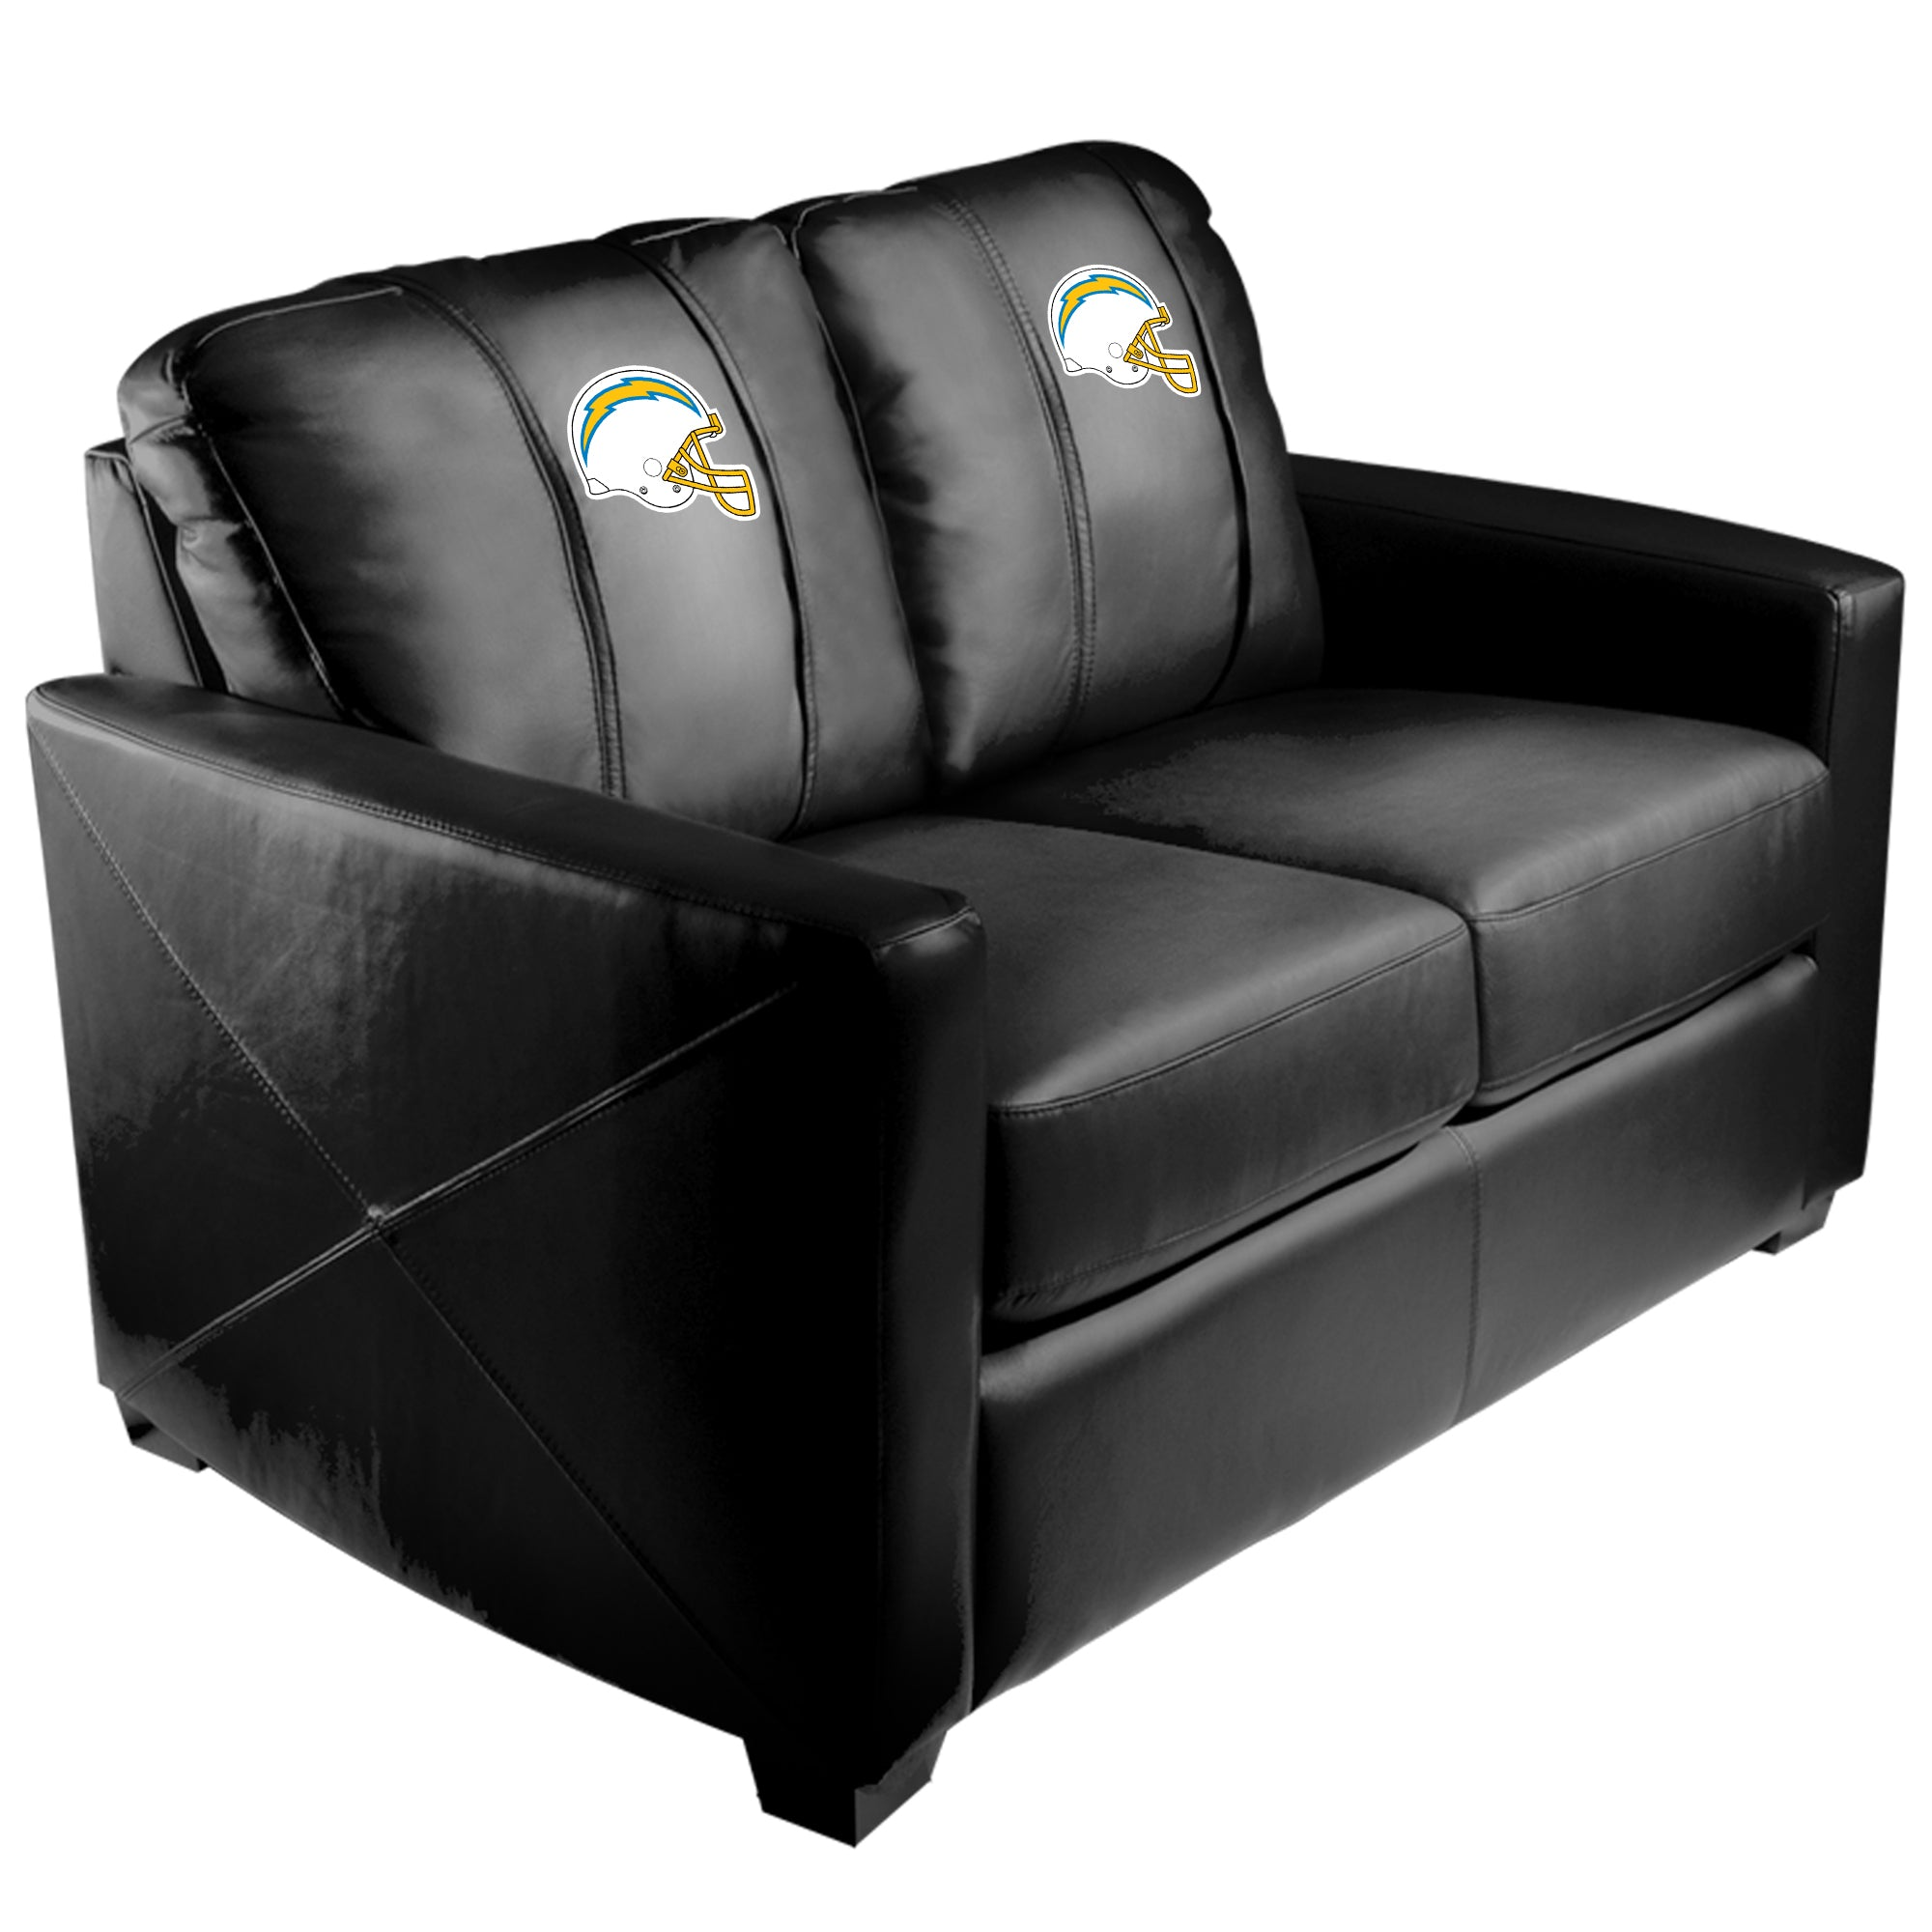 Silver Loveseat with  Los Angeles Chargers Helmet Logo